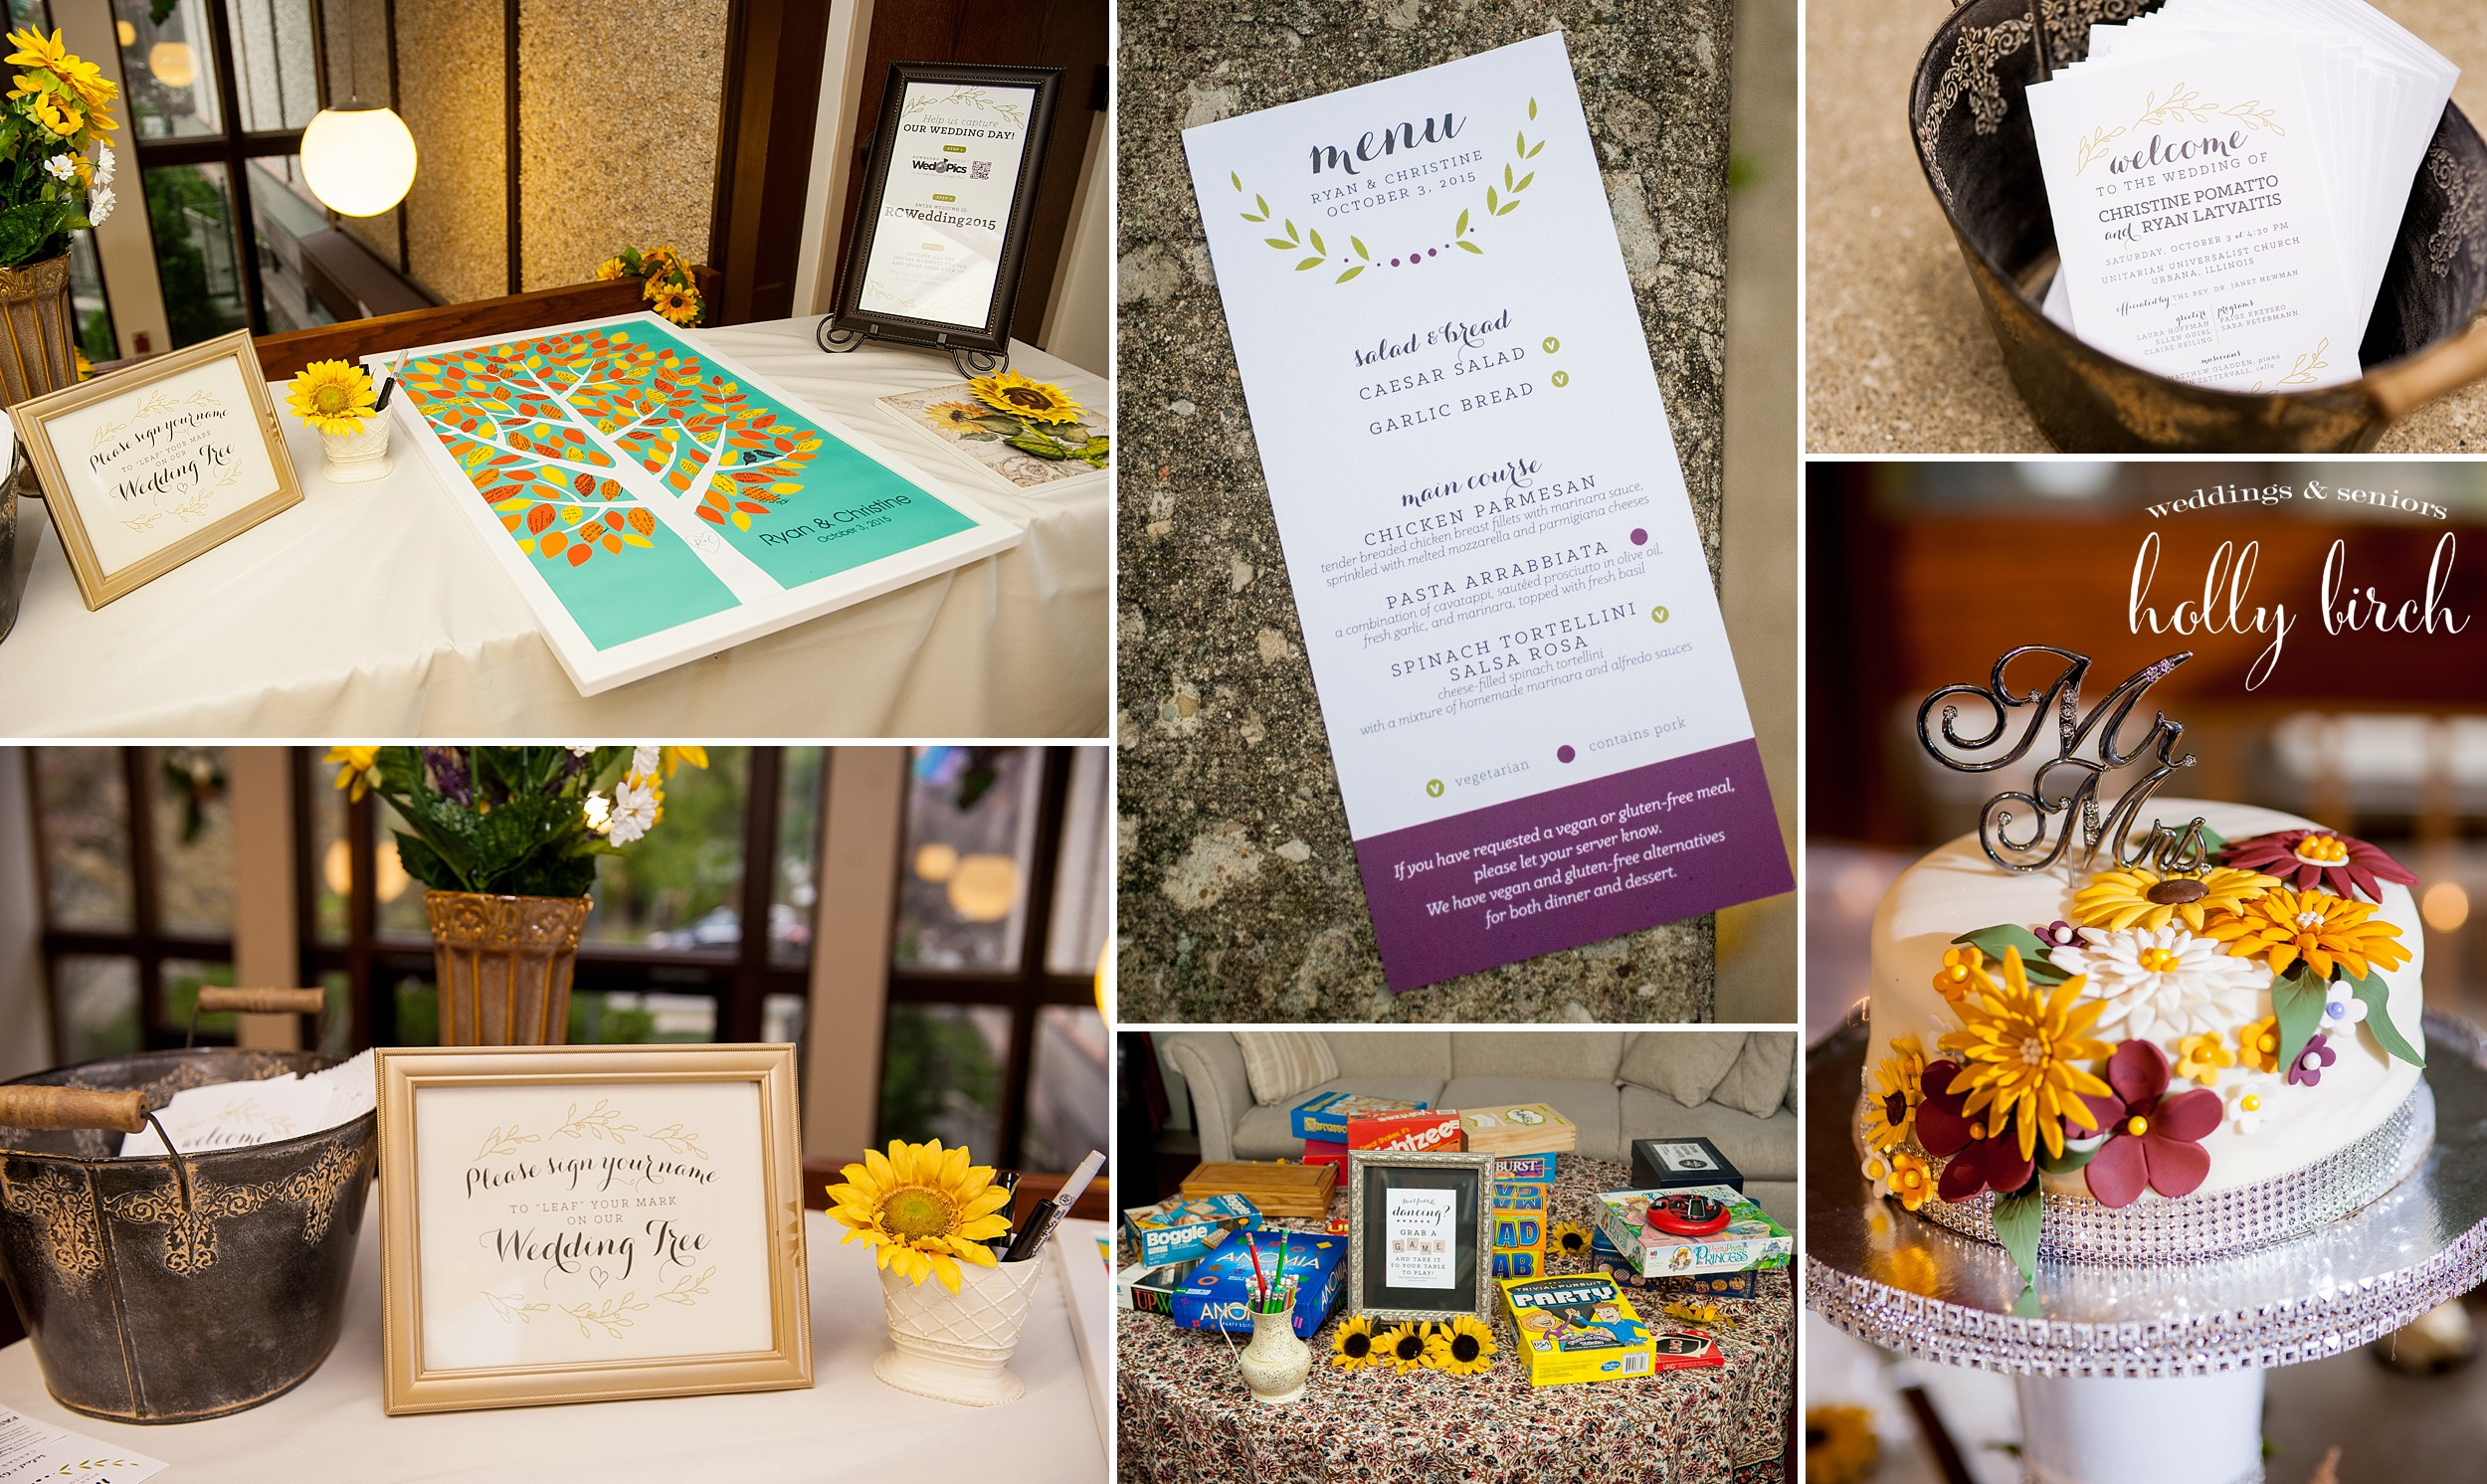 reception details menu thumbprint tree